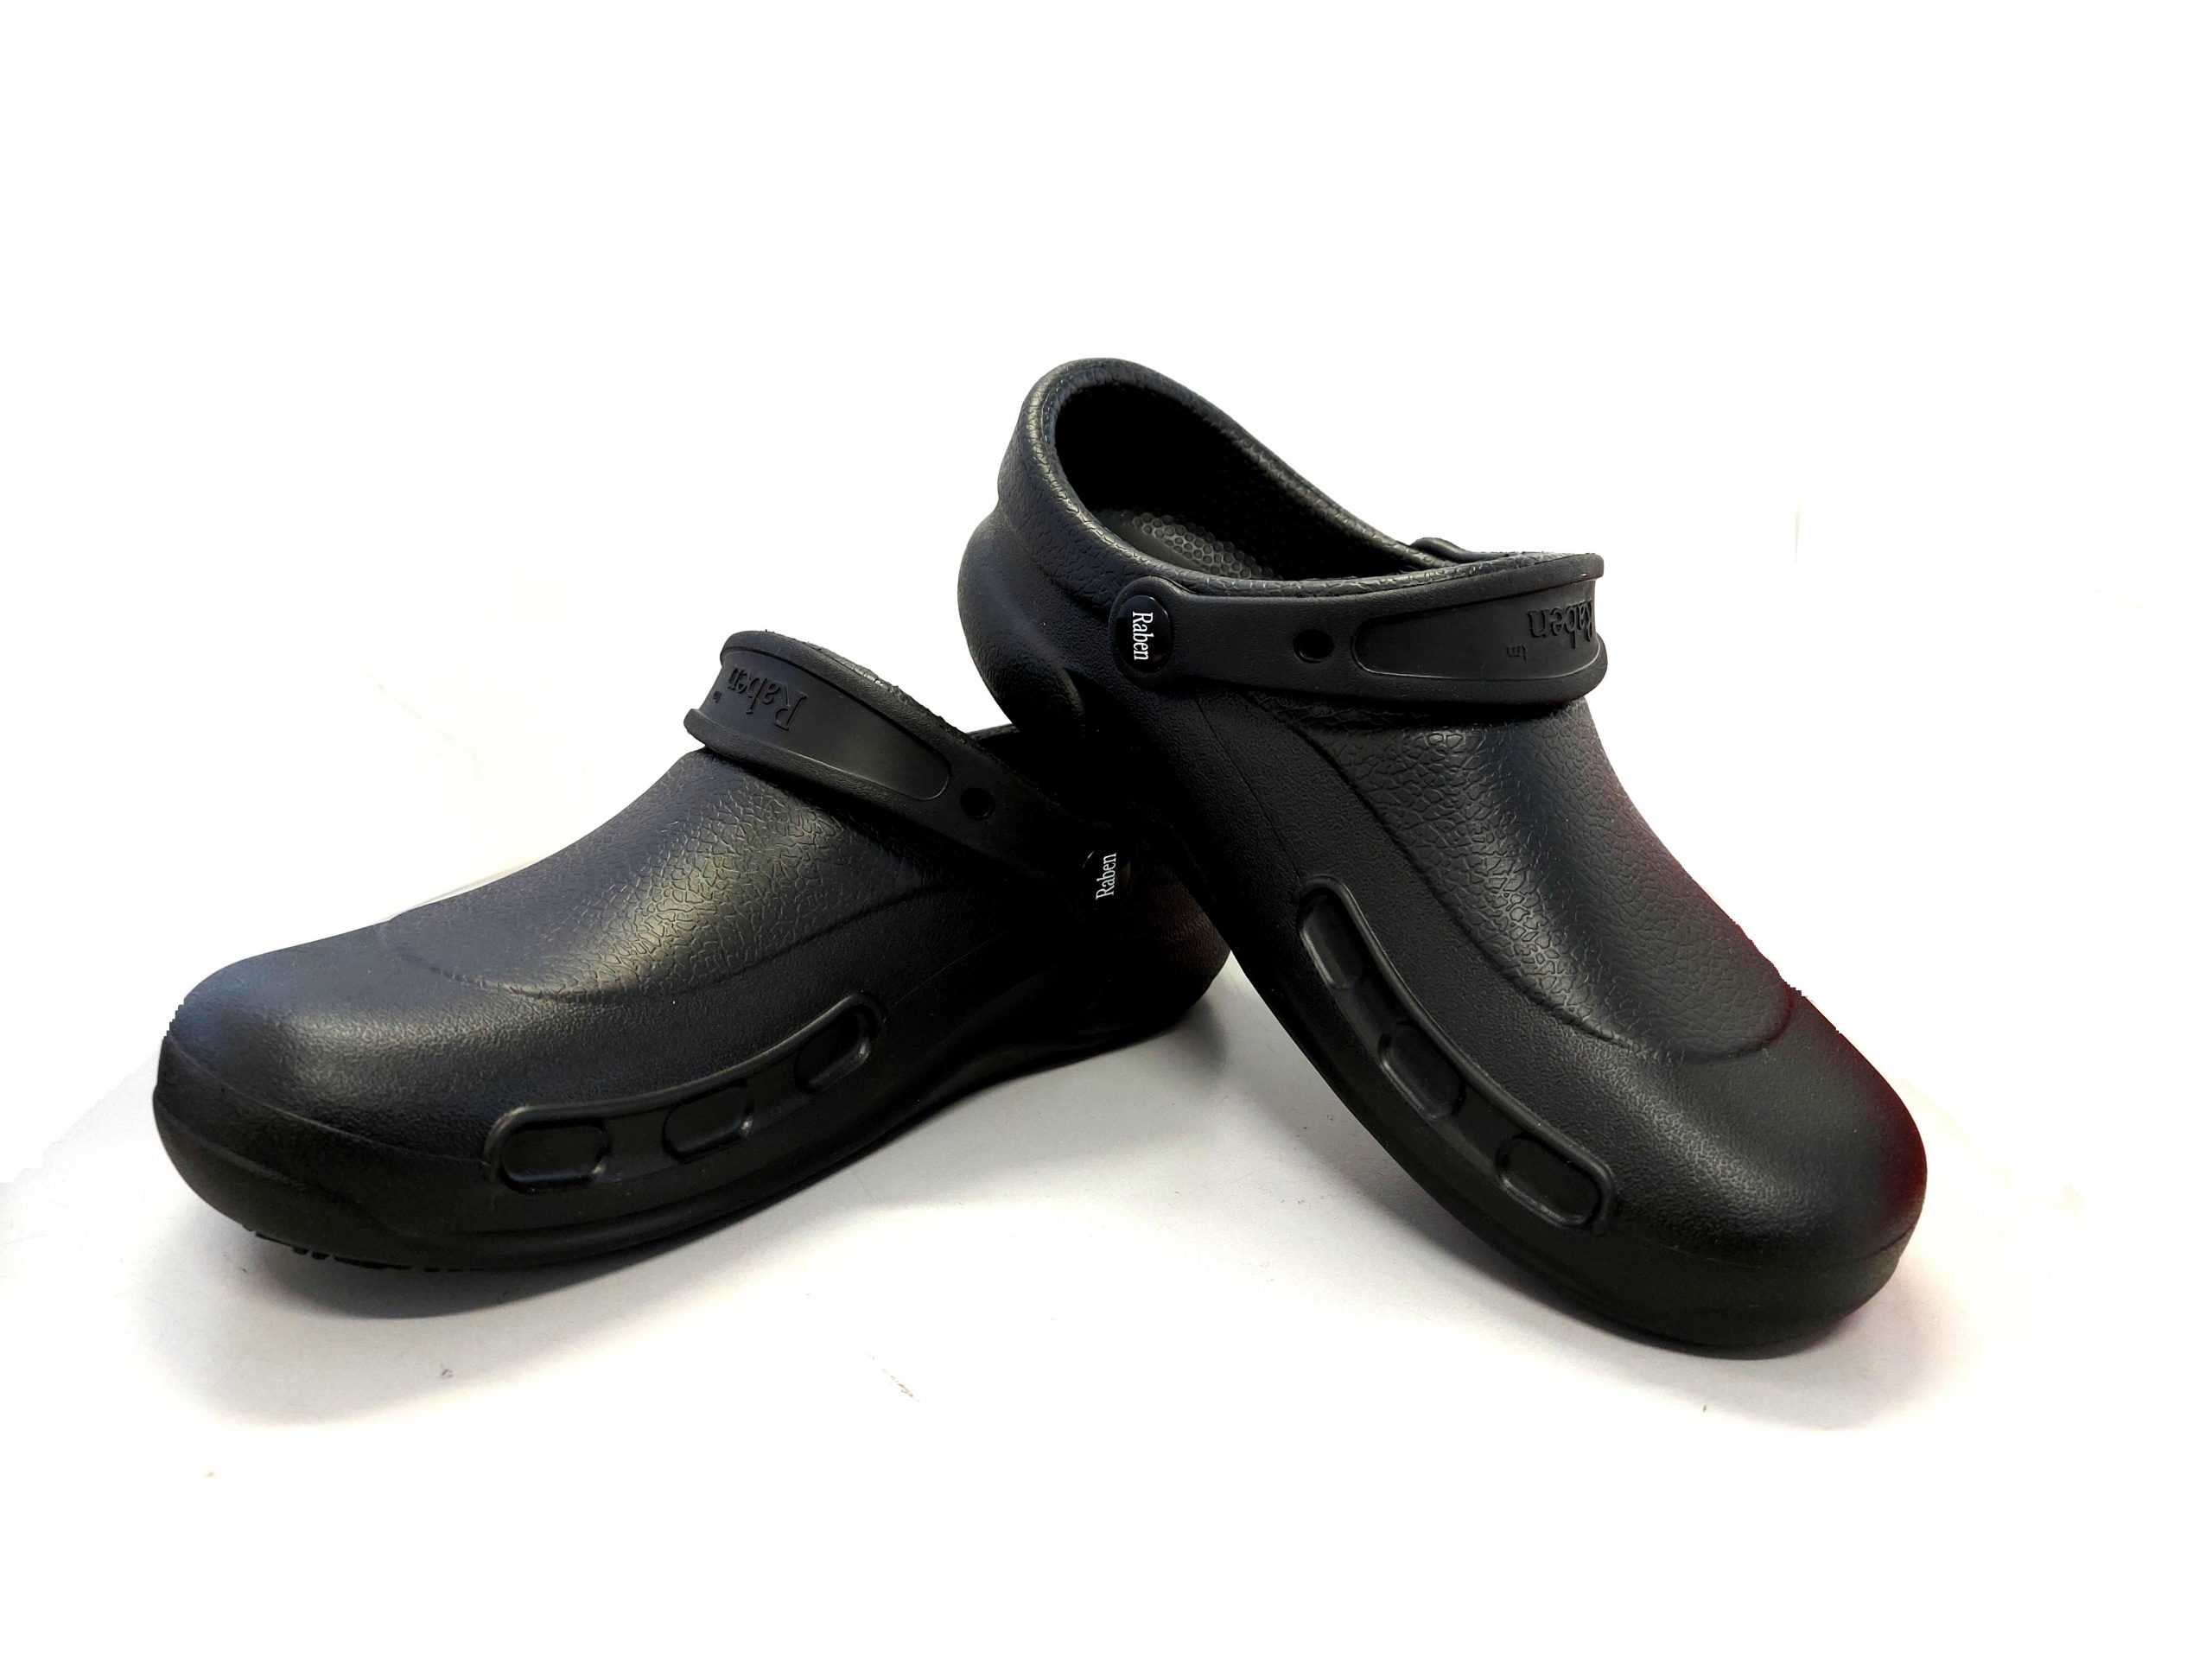 KNS-194 Kitchen Clogs in Black